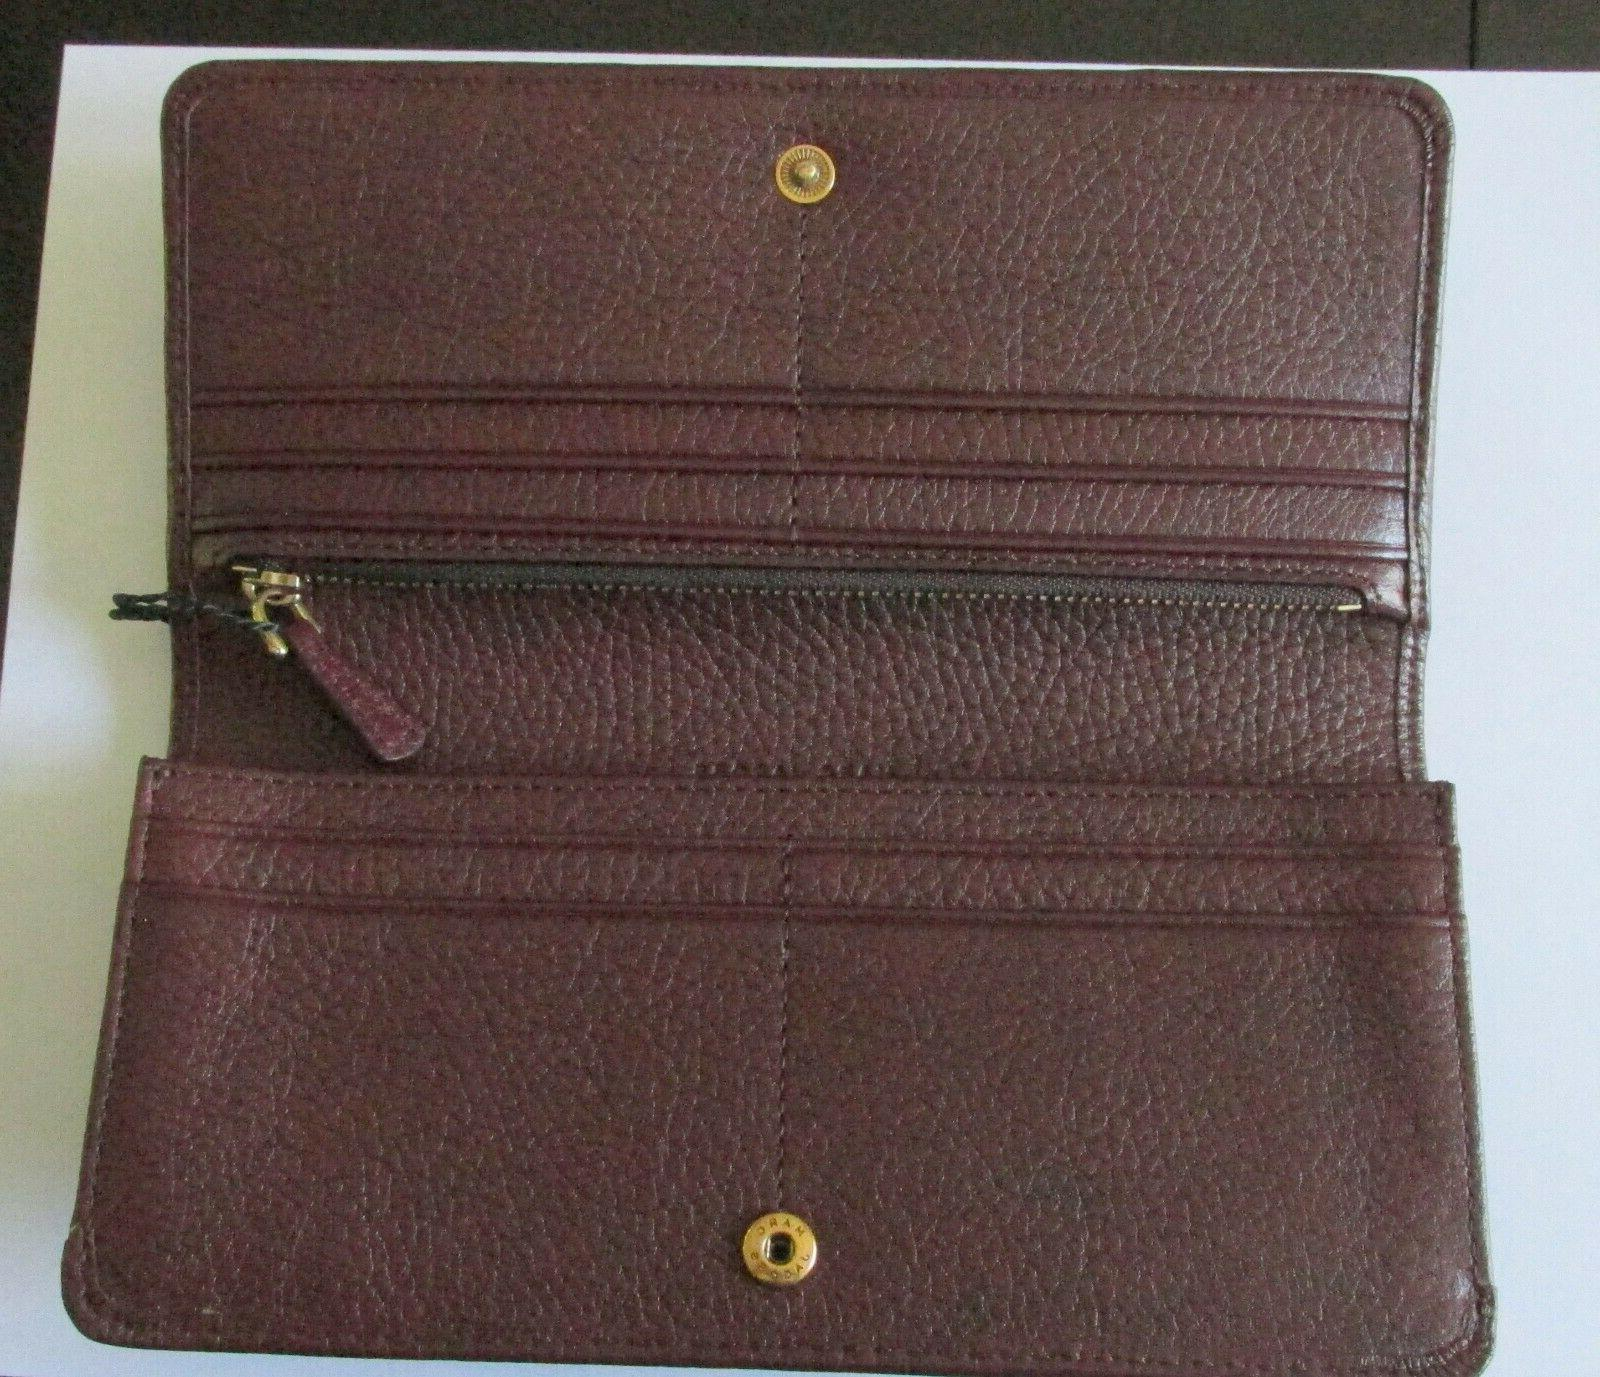 NWT MARC Jacobs Wallet in Maroon